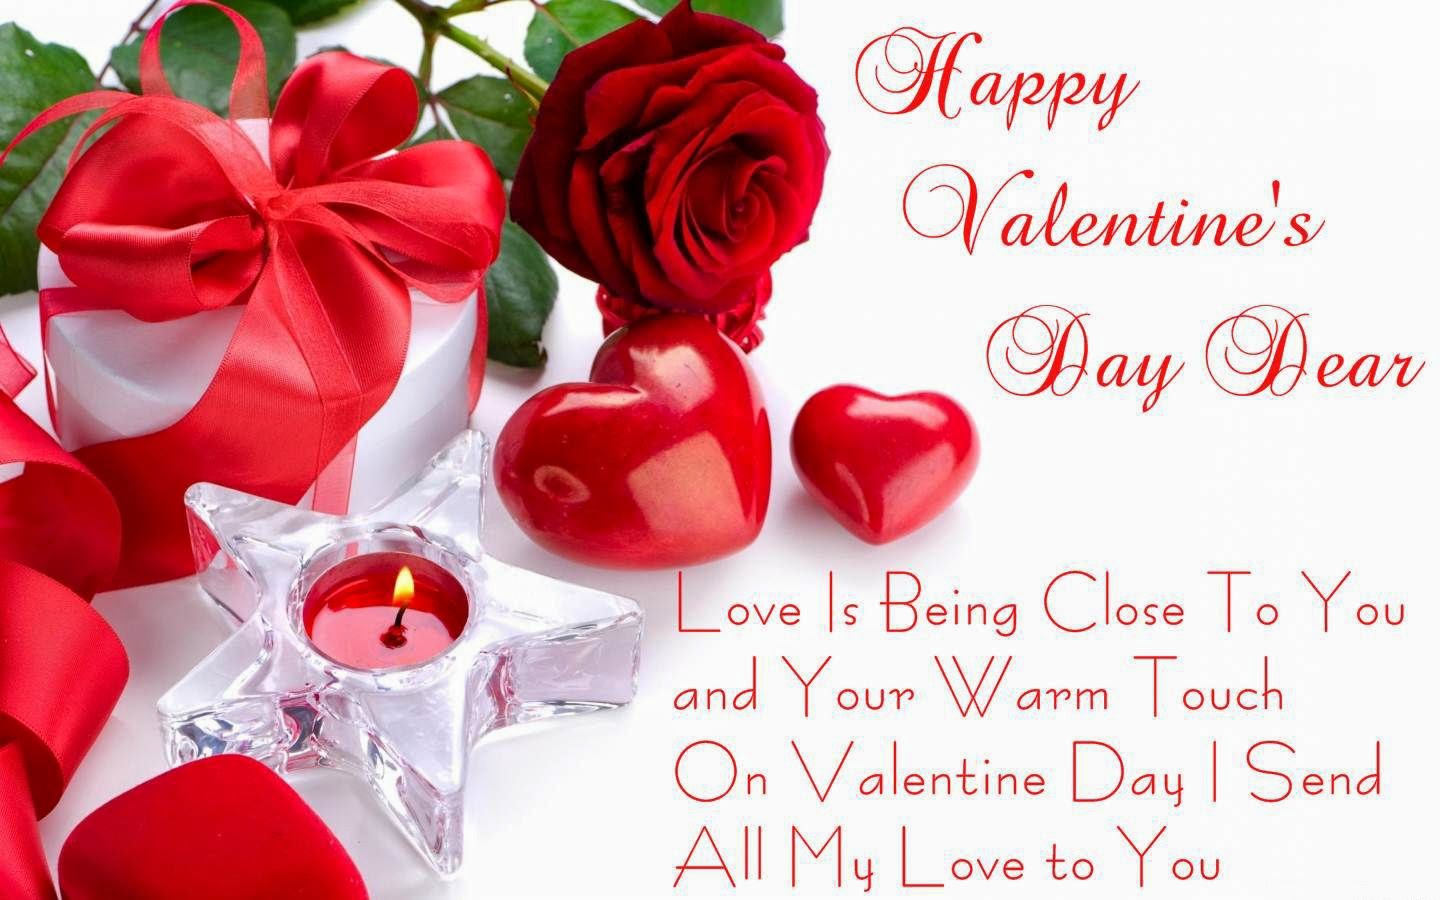 Love Quotes Valentines Day Amusing Quotes For Valentines Day Wishes  Valentine's Day Info